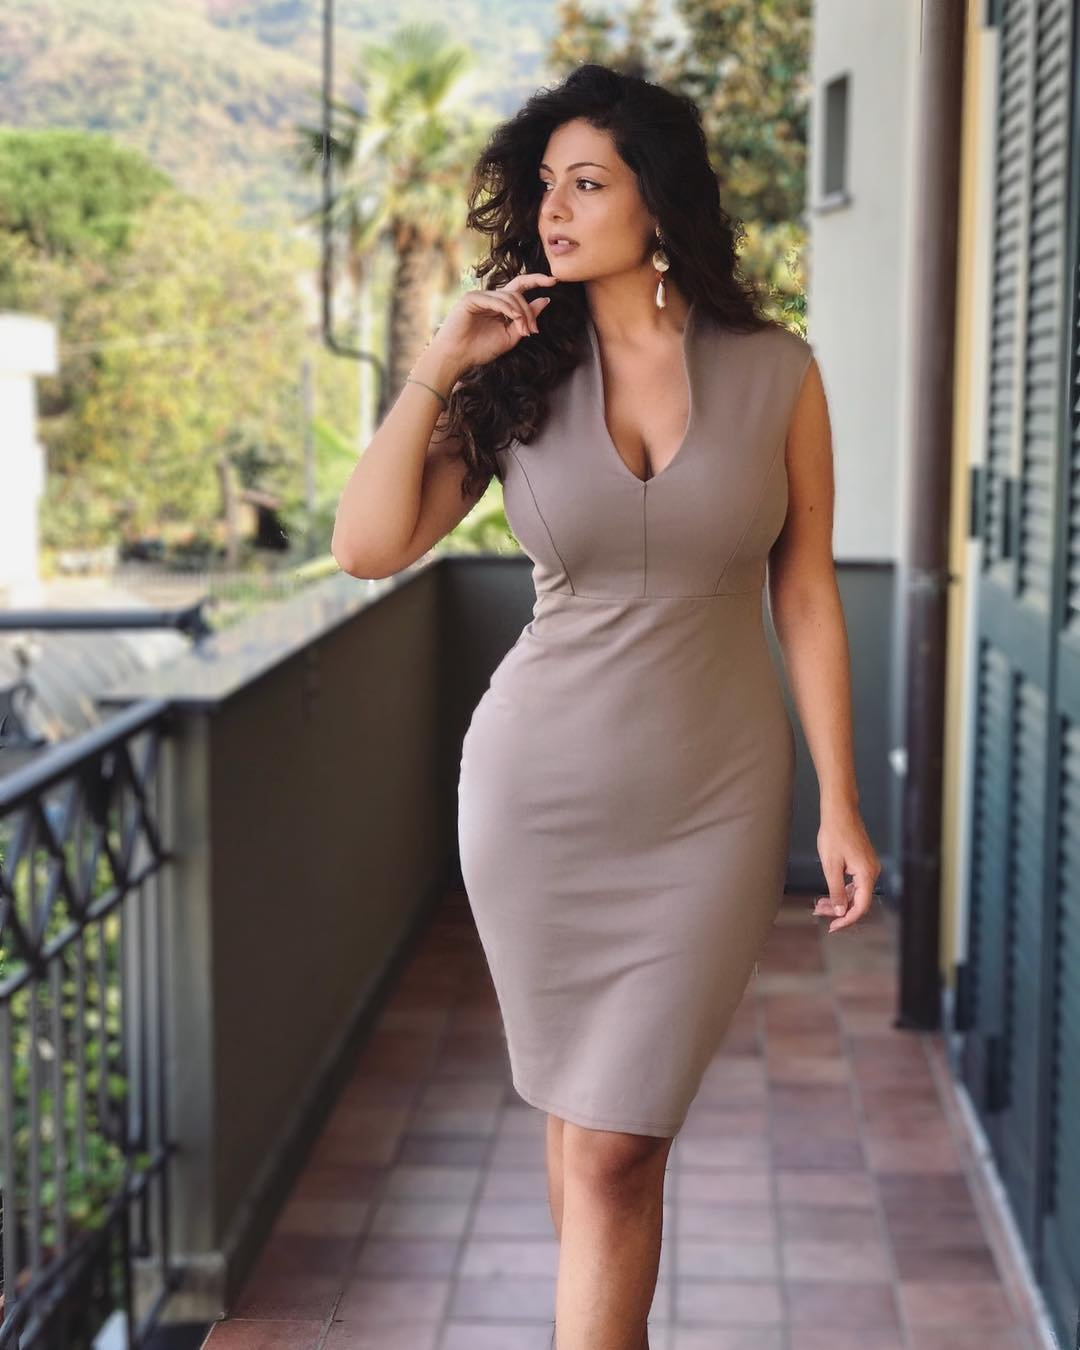 curvy girl dating